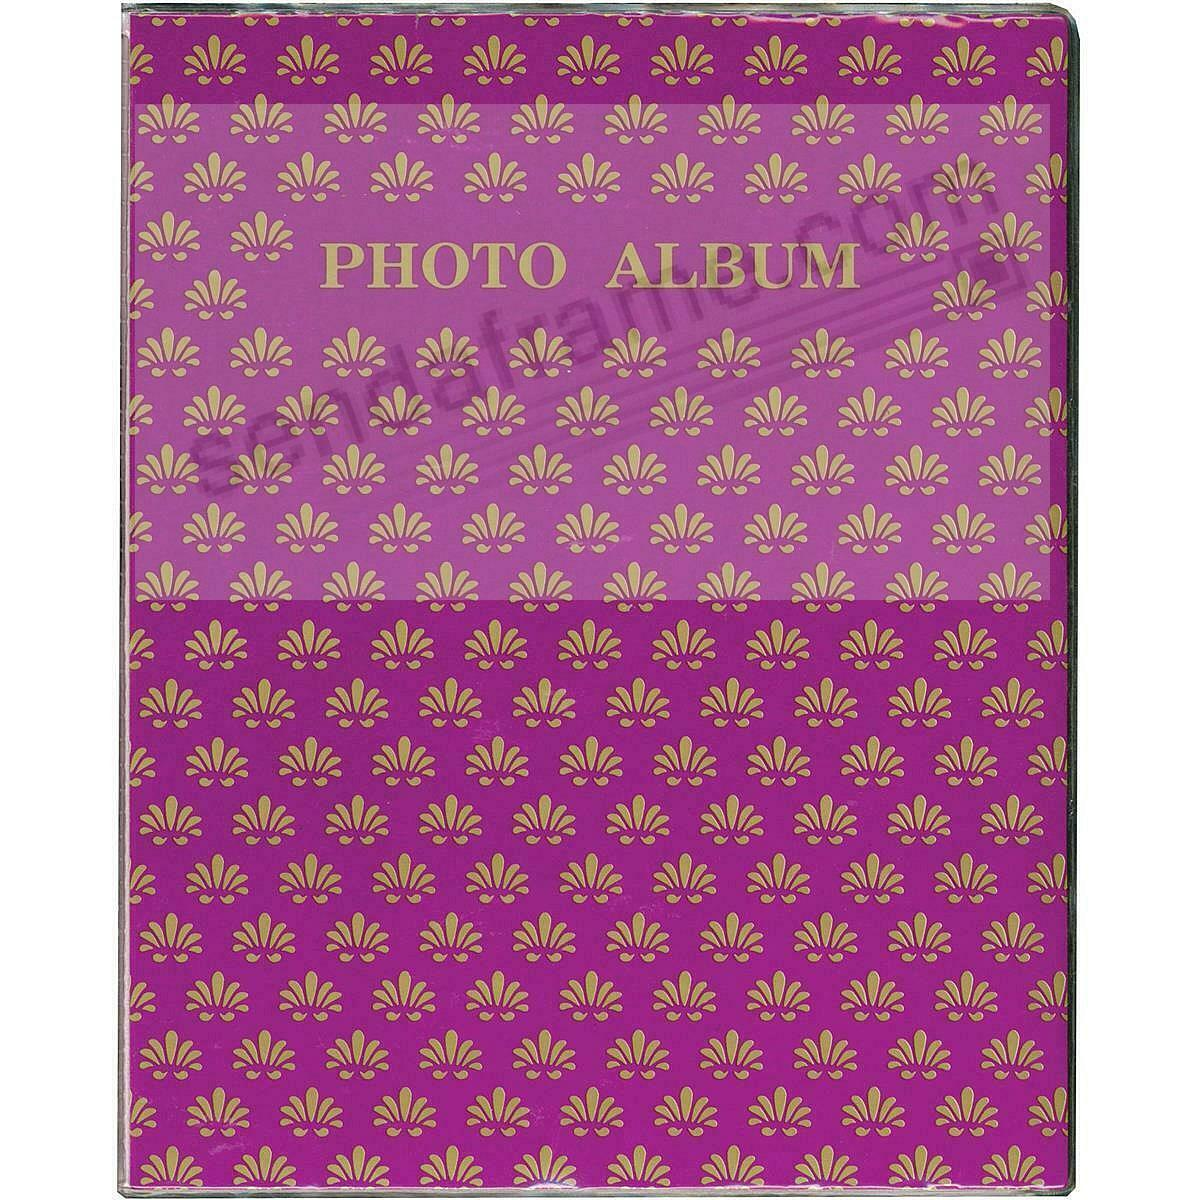 PURPLE Proof style 2-up photo book holds 64 prints (3pc bundle priced)